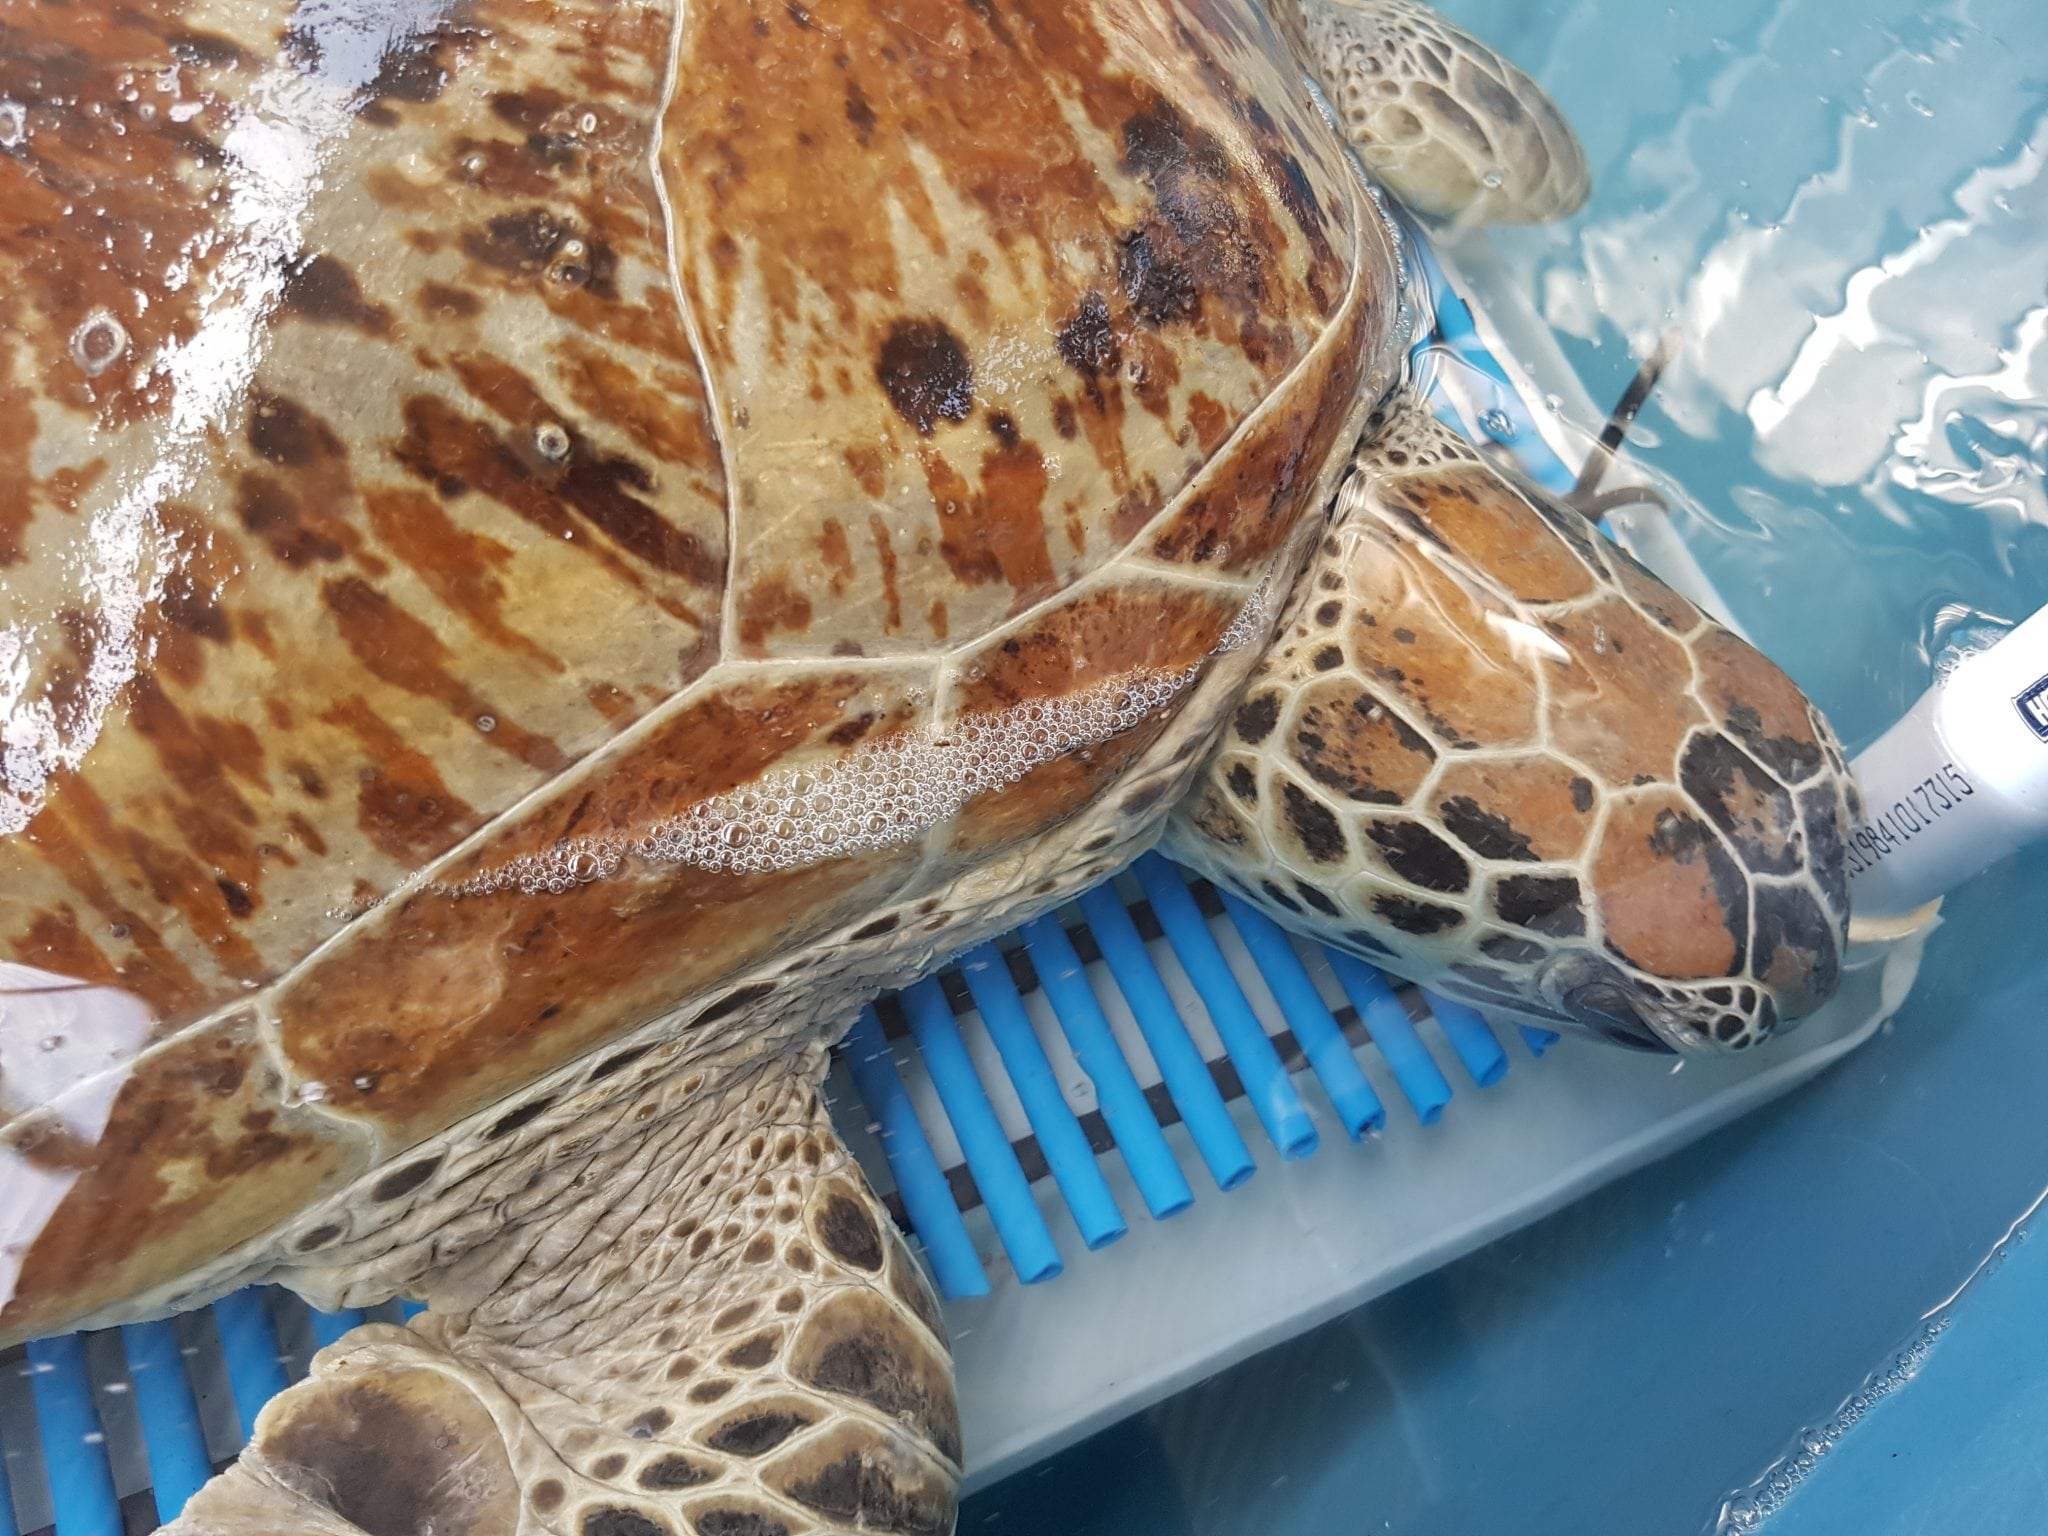 Turtle Rescue – Carlee